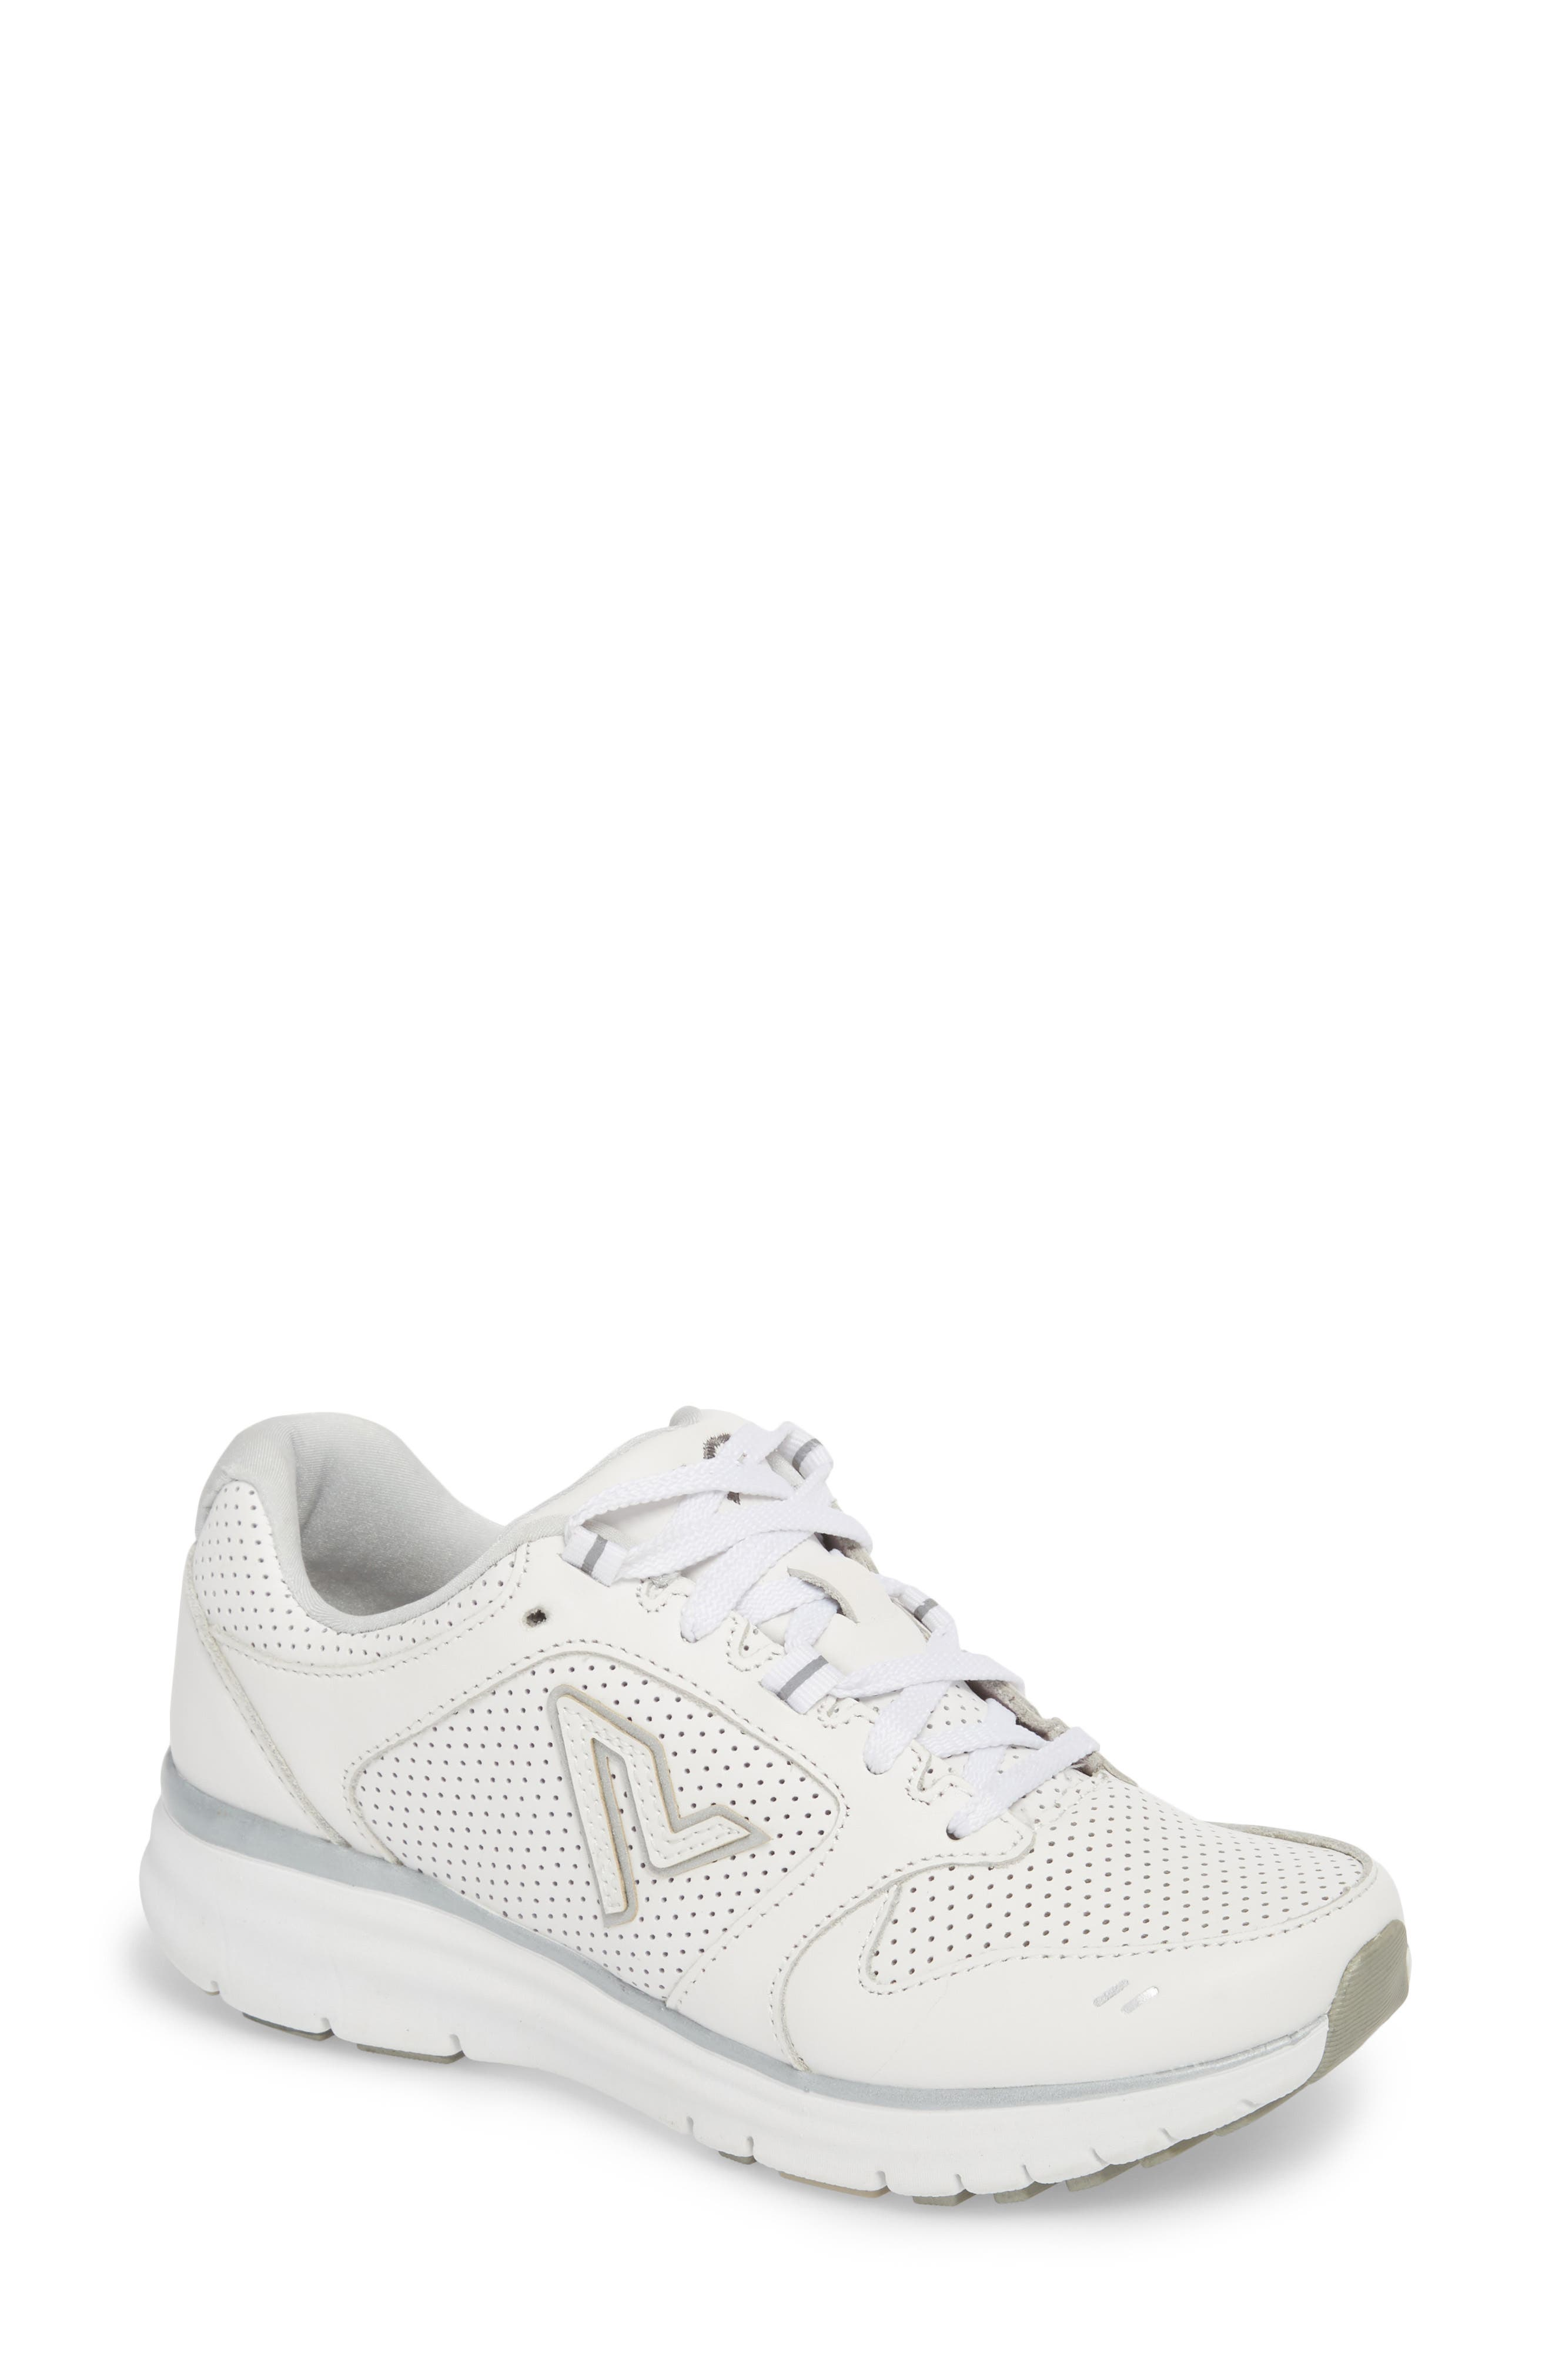 Thrill Sneaker,                         Main,                         color, White Suede